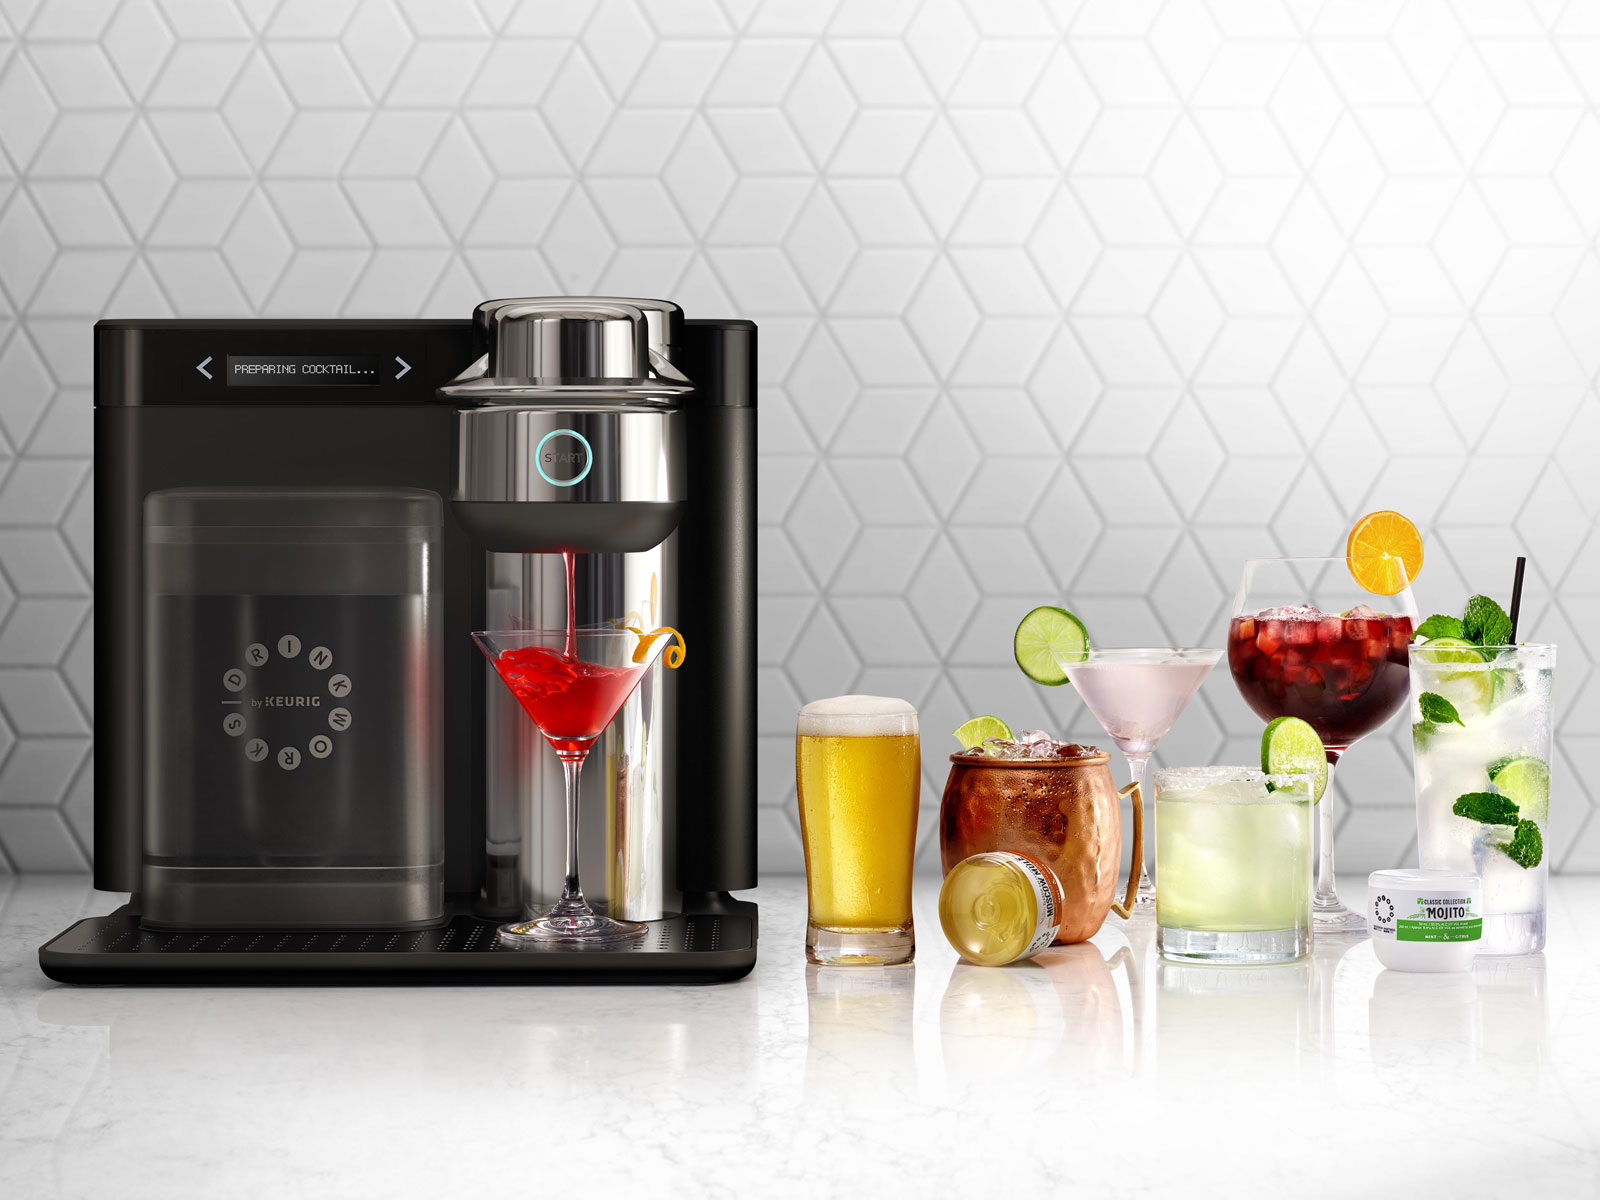 Keurig's Booze-Making 'Drinkworks' Machine Is Here